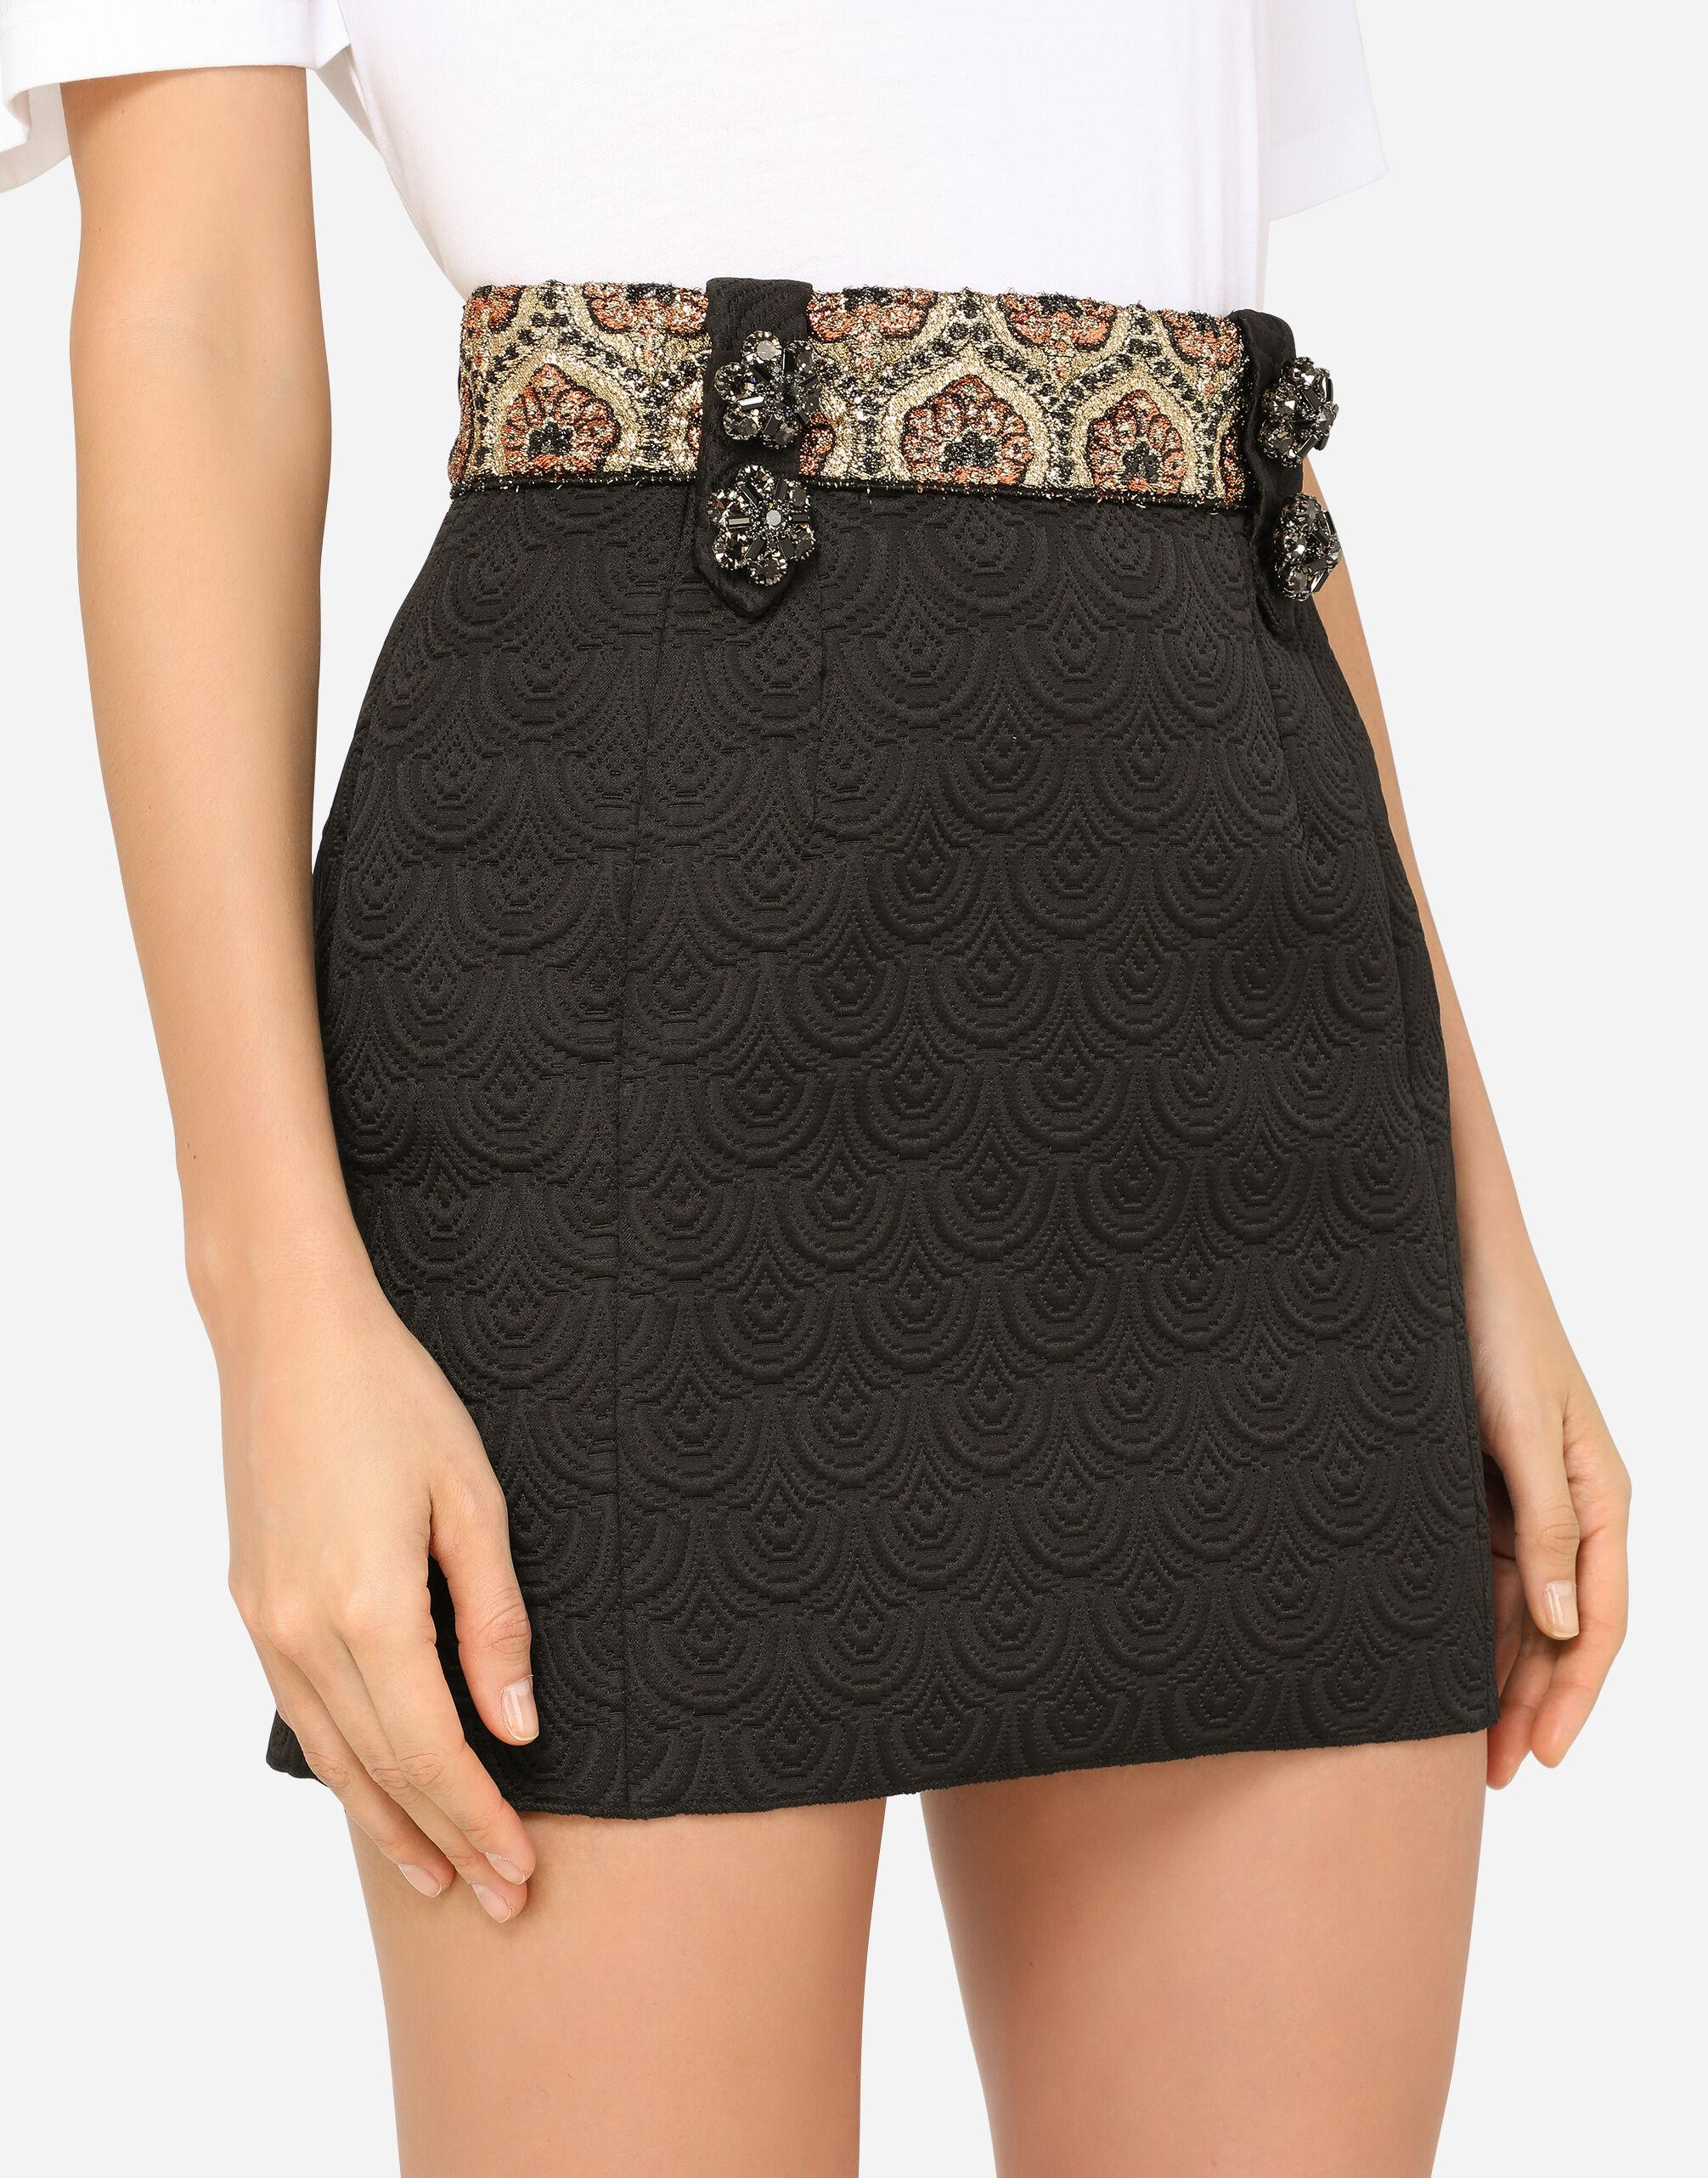 Short jacquard skirt with bejeweled buttons 2